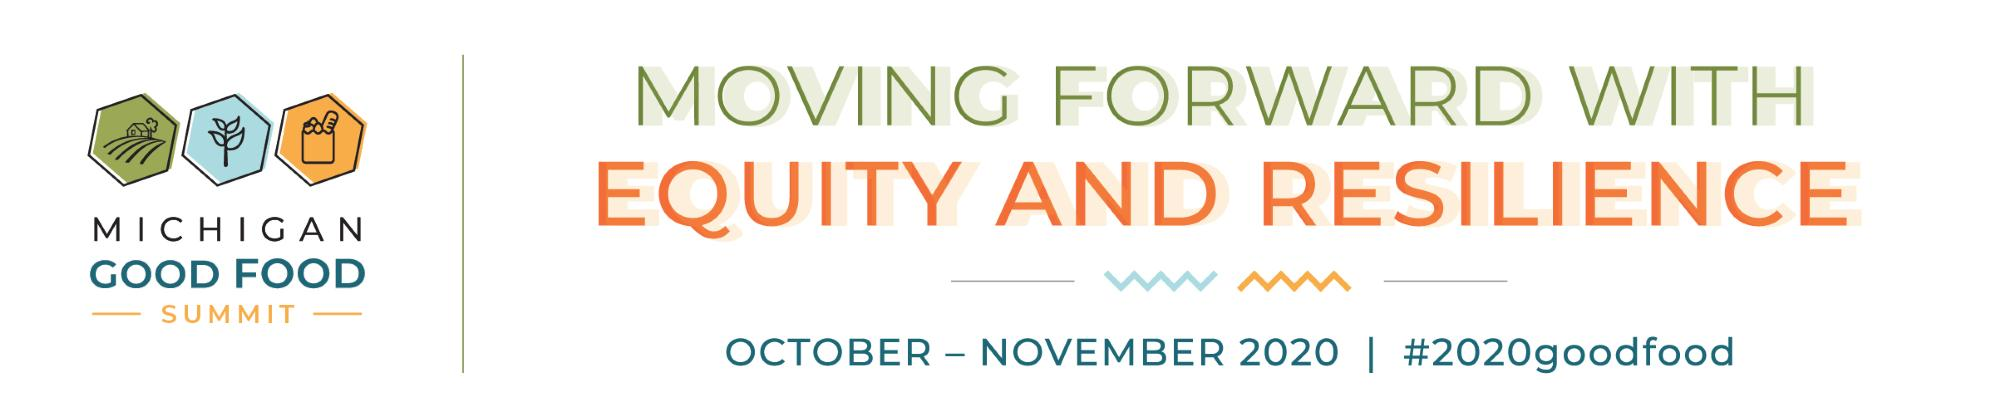 Michigan Good Food Summit: Moving Forward with Equity and Resilience #goodfood2020 logo.